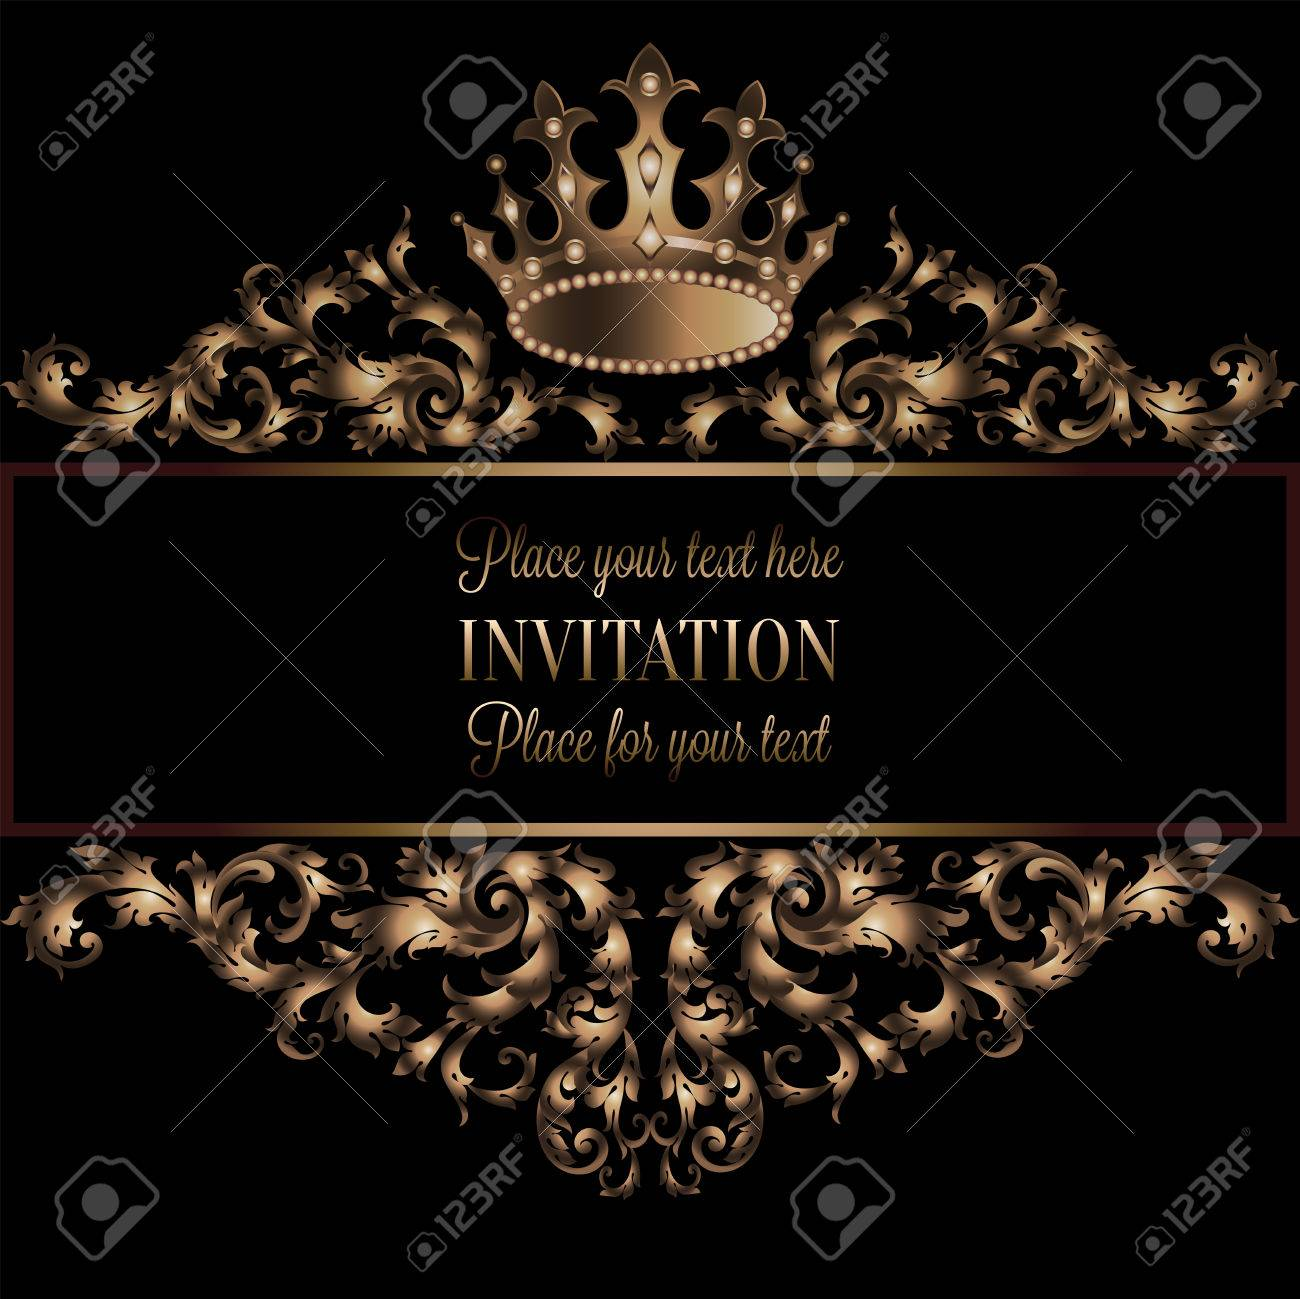 Vintage gold invitation card with black background divider vintage gold invitation card with black background divider header ornamental lacy vector frame stopboris Image collections